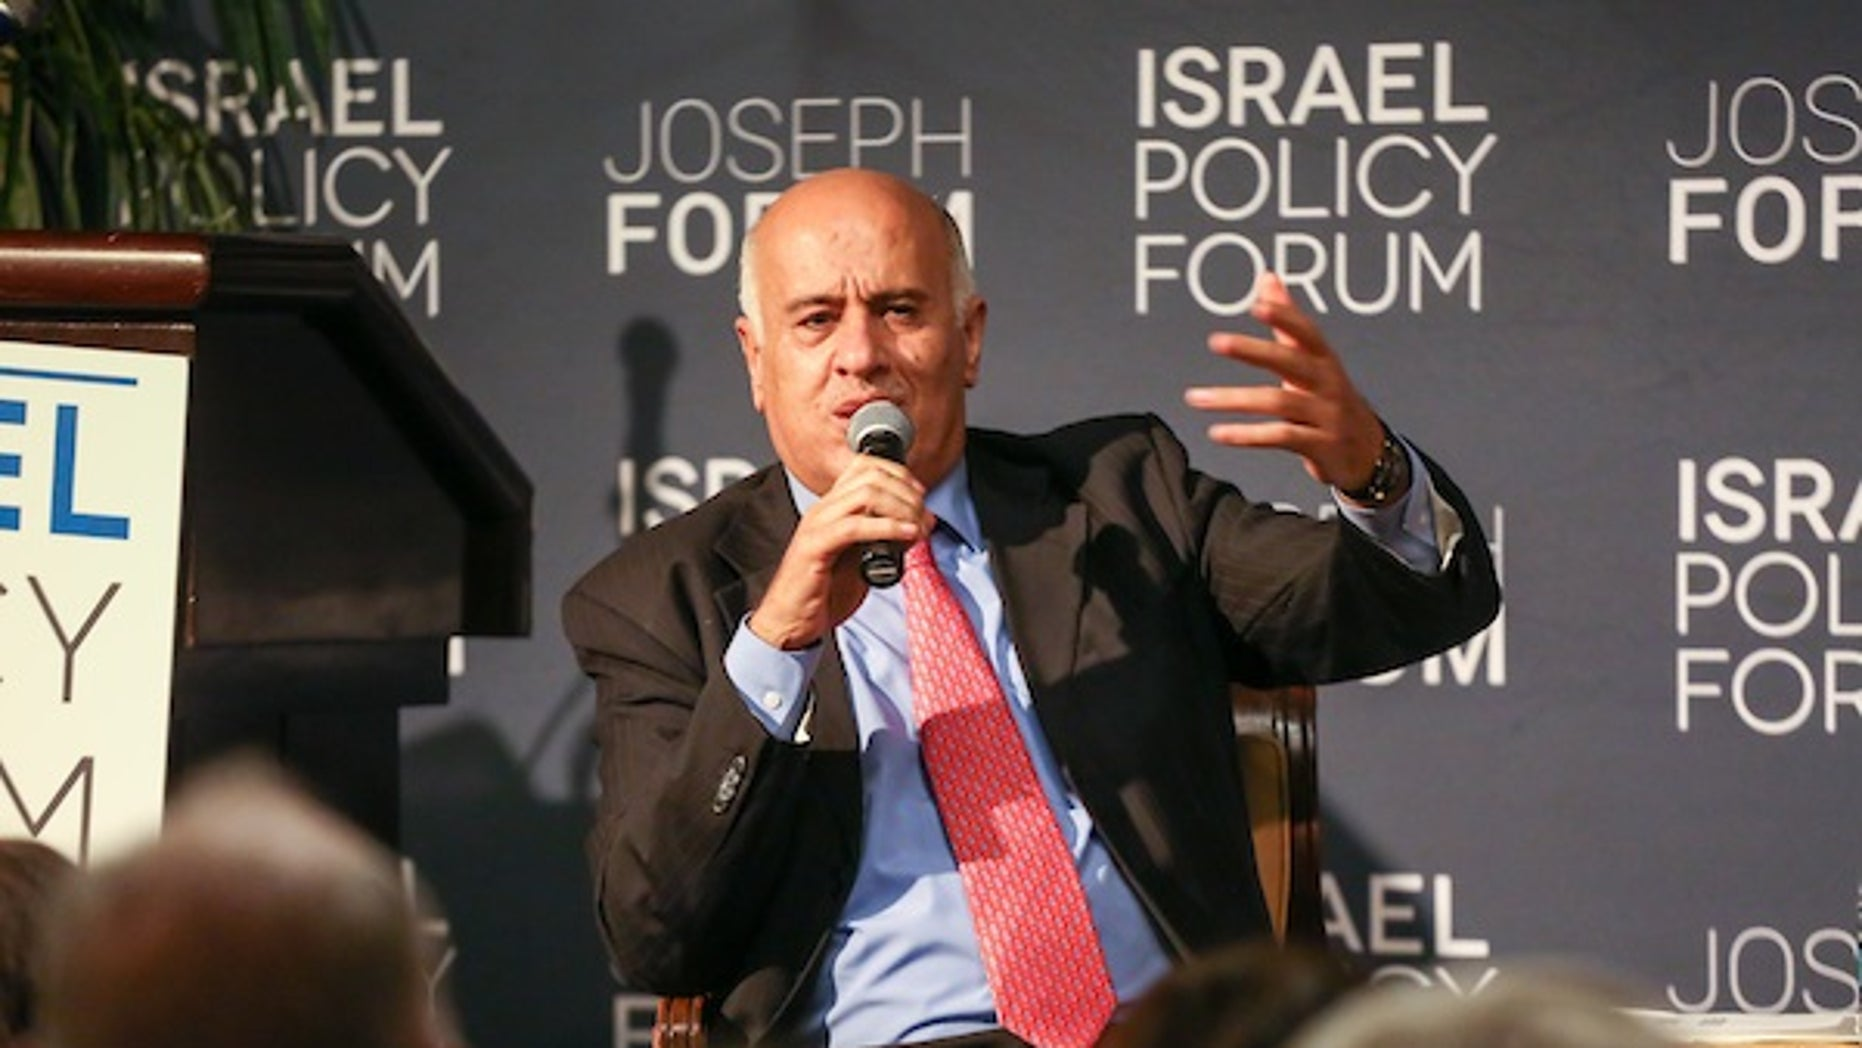 Controversial Palestinian Authority leader Jibril Rajoub at the Israel Policy Forum